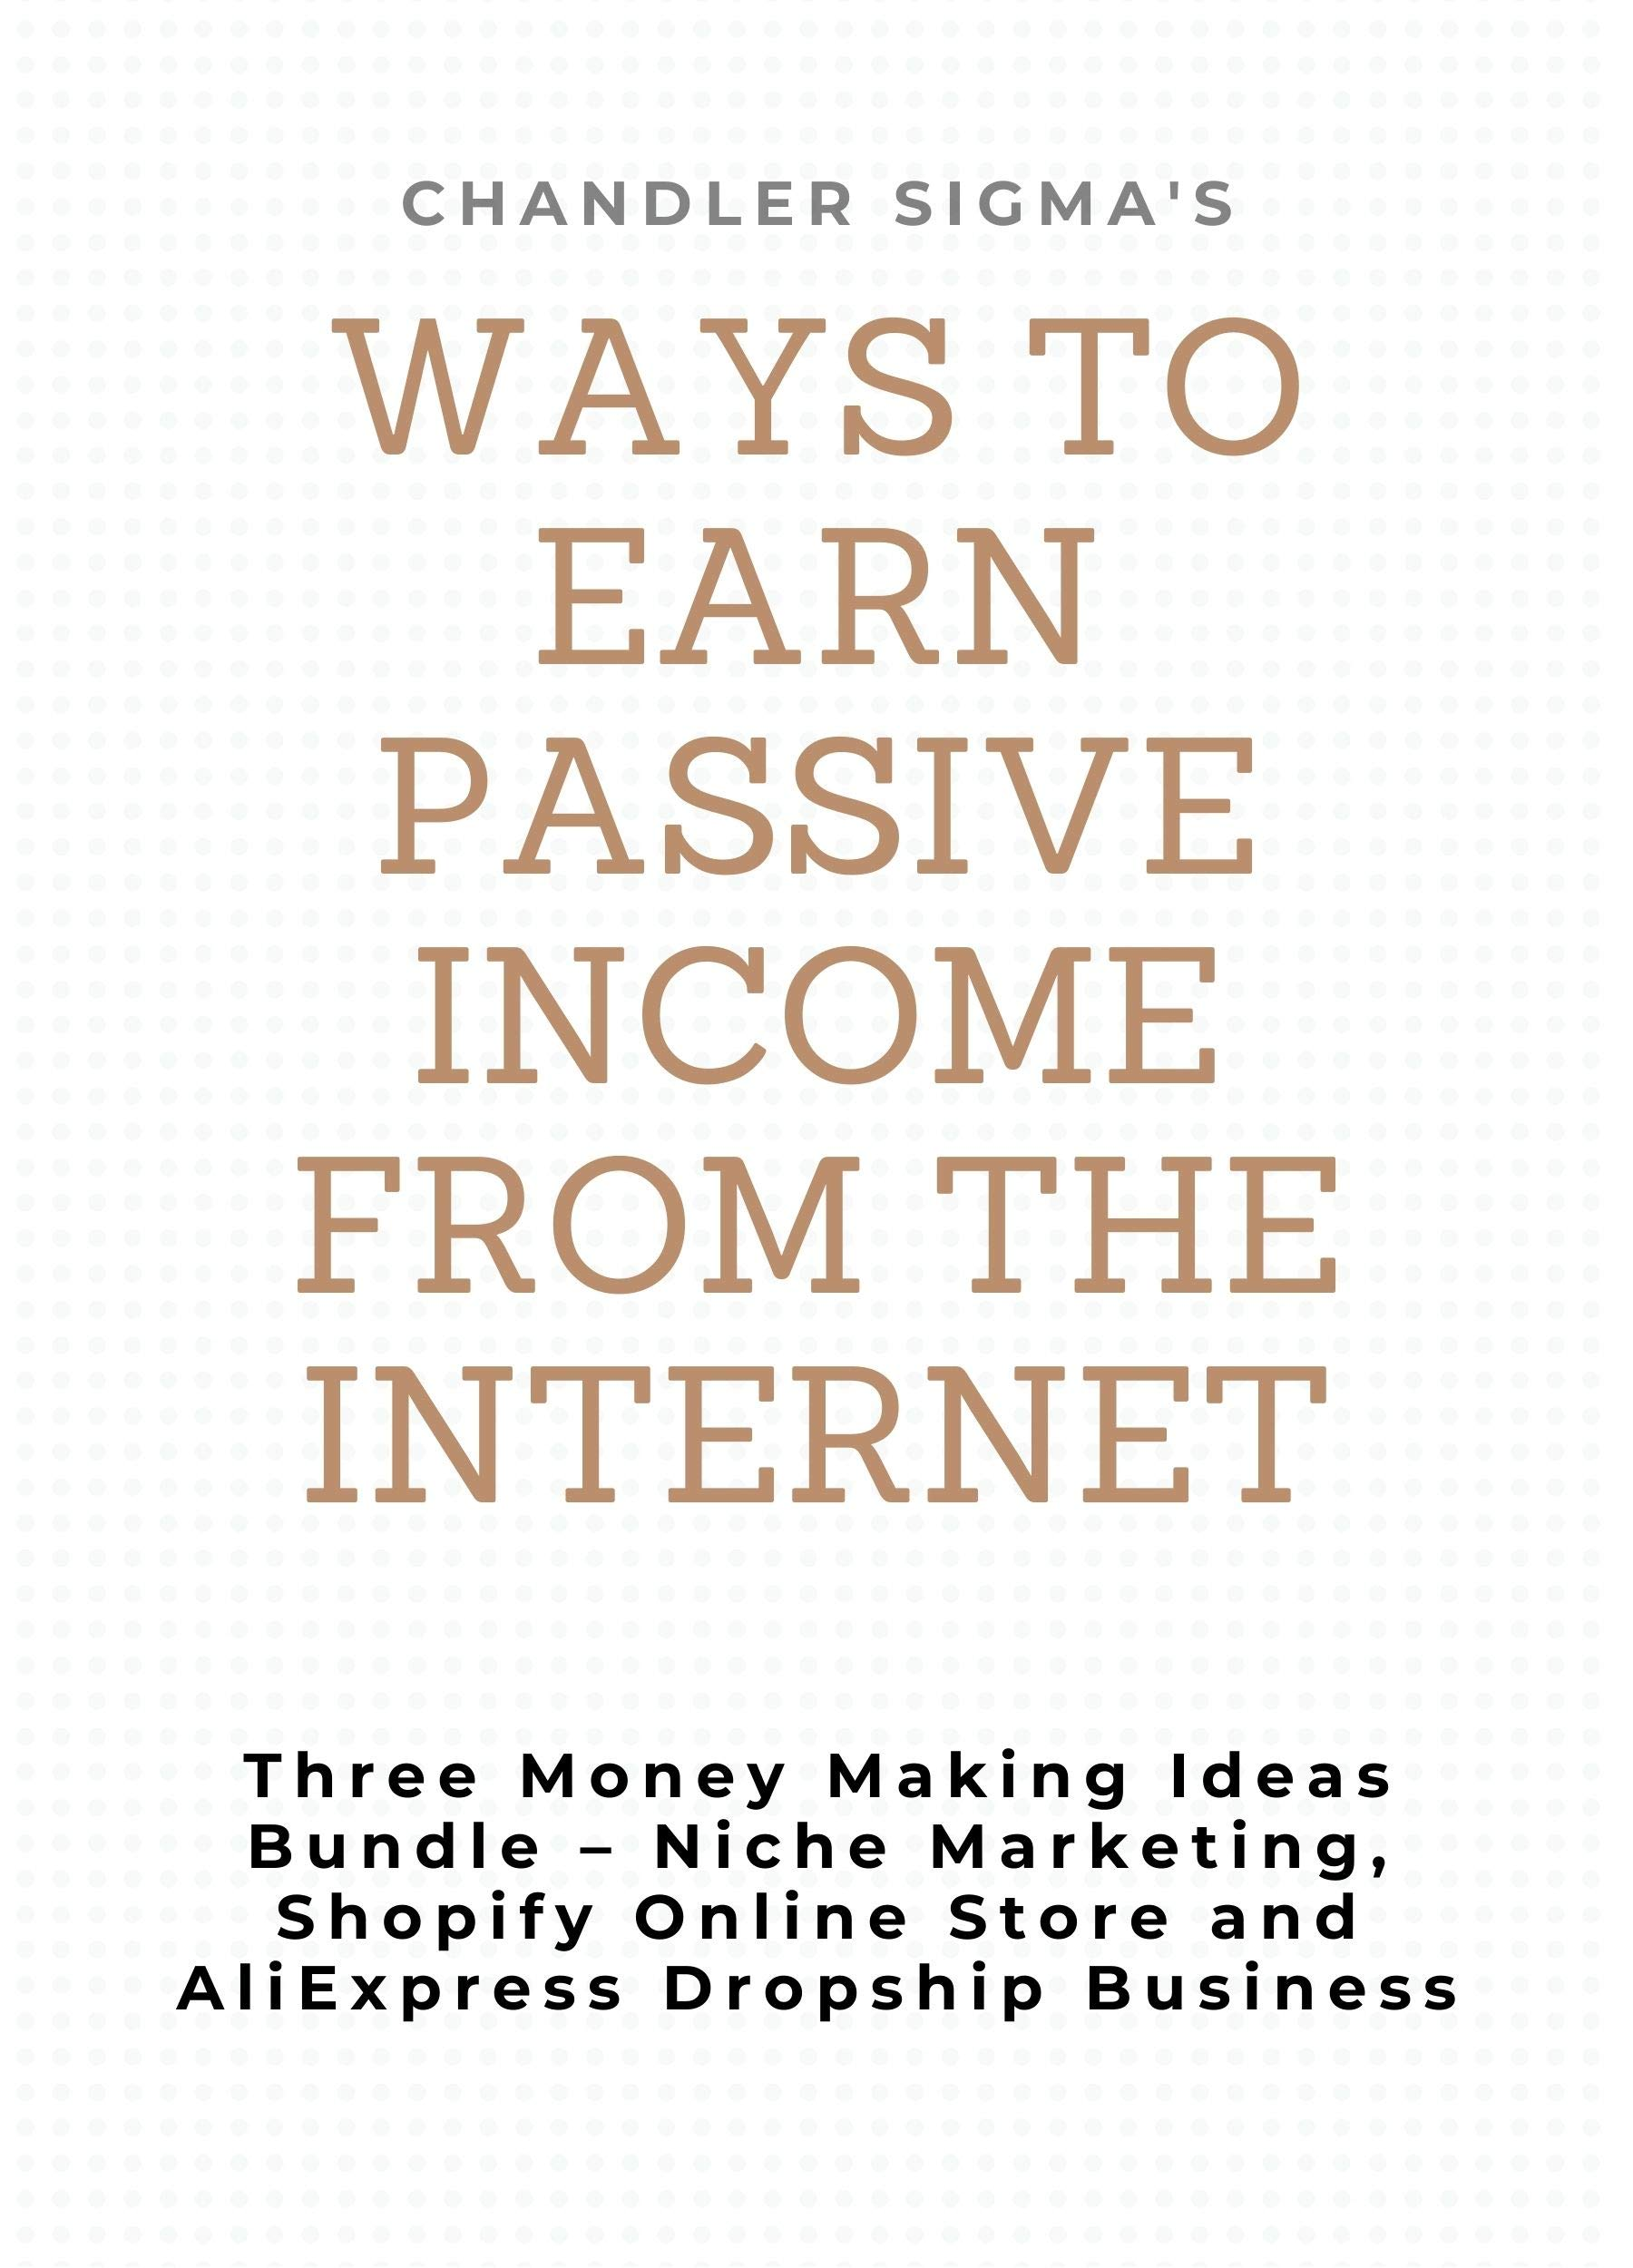 Ways to Earn Passive Income from the Internet: Three Money Making Ideas Bundle – Niche Marketing, Shopify Online Store and AliExpress Dropship Business